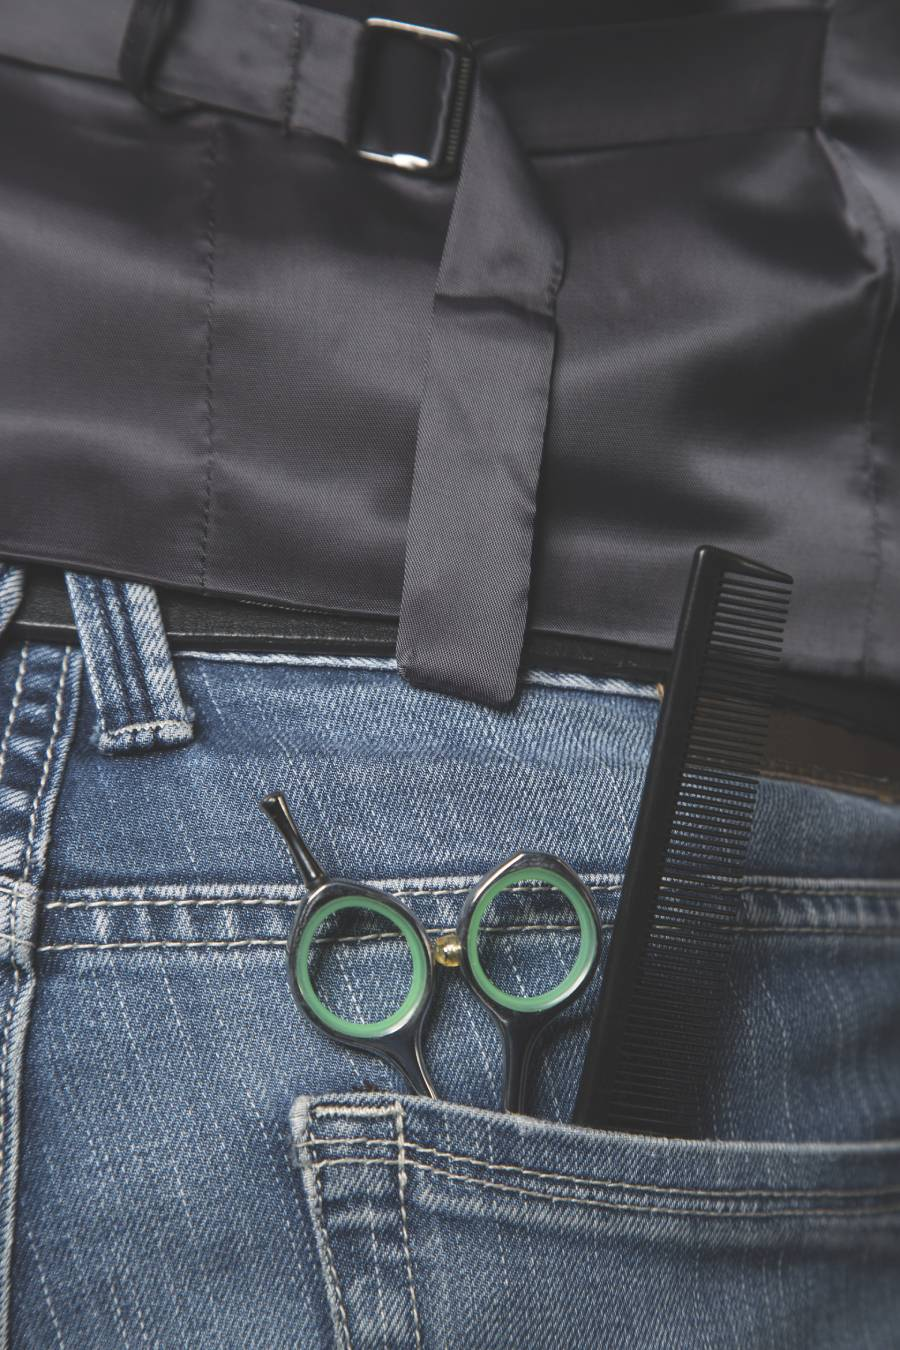 jeans-pocket-of-a-barber-with-a-comb-and-scissors--P9823Q7 (1)